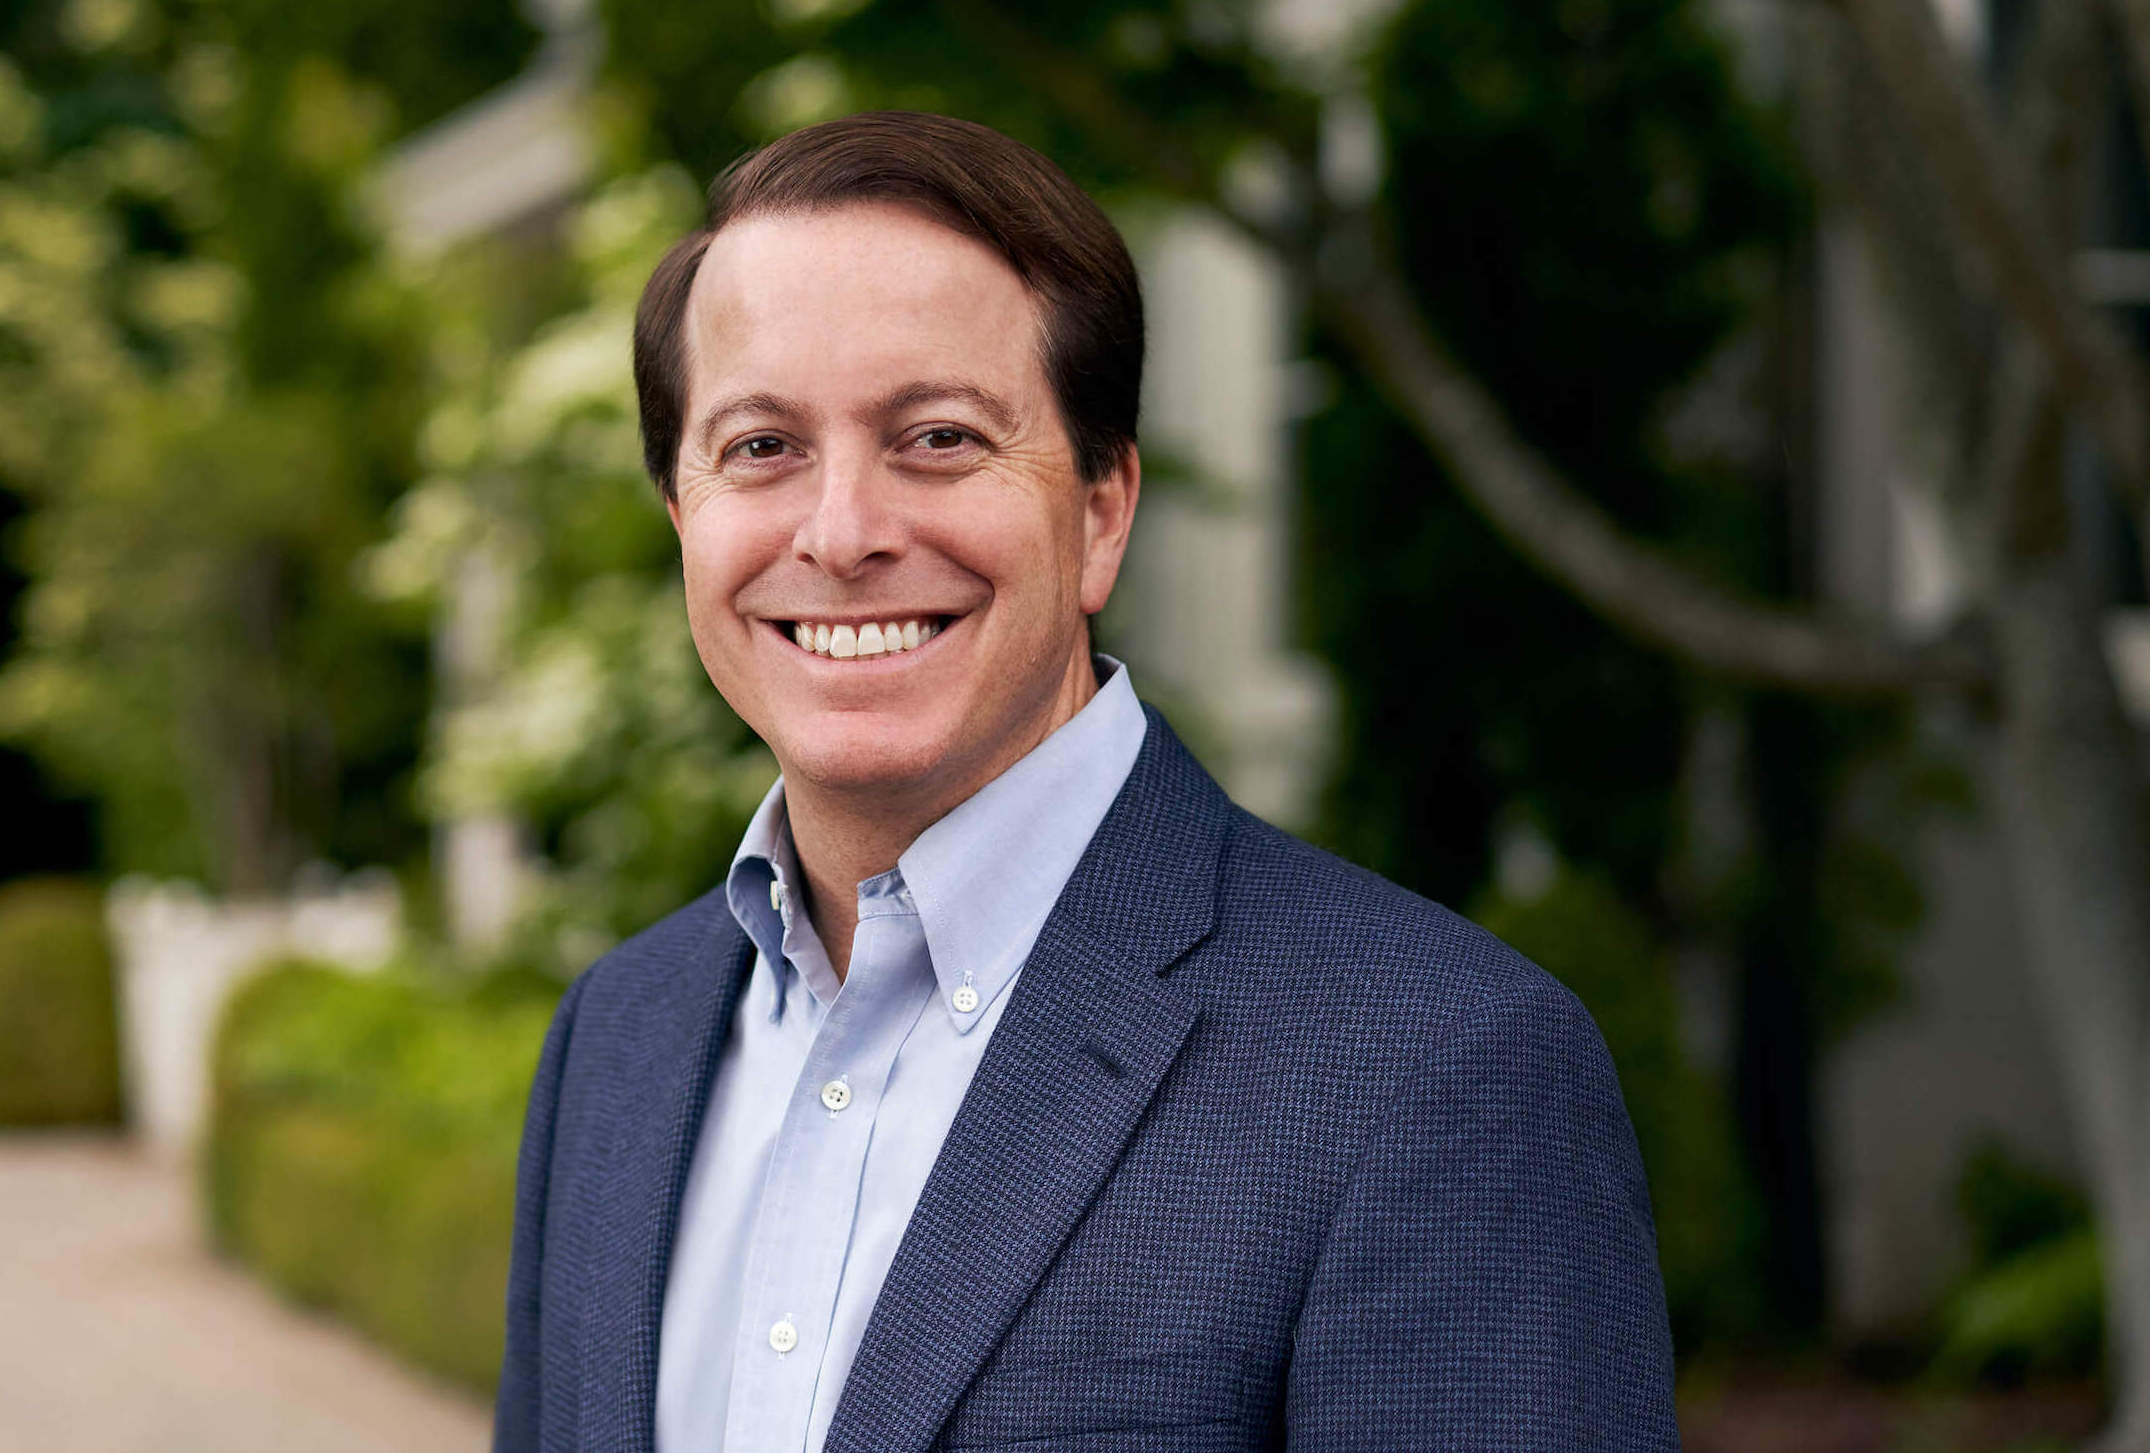 Jamie Iannone, President and Chief Executive Officer